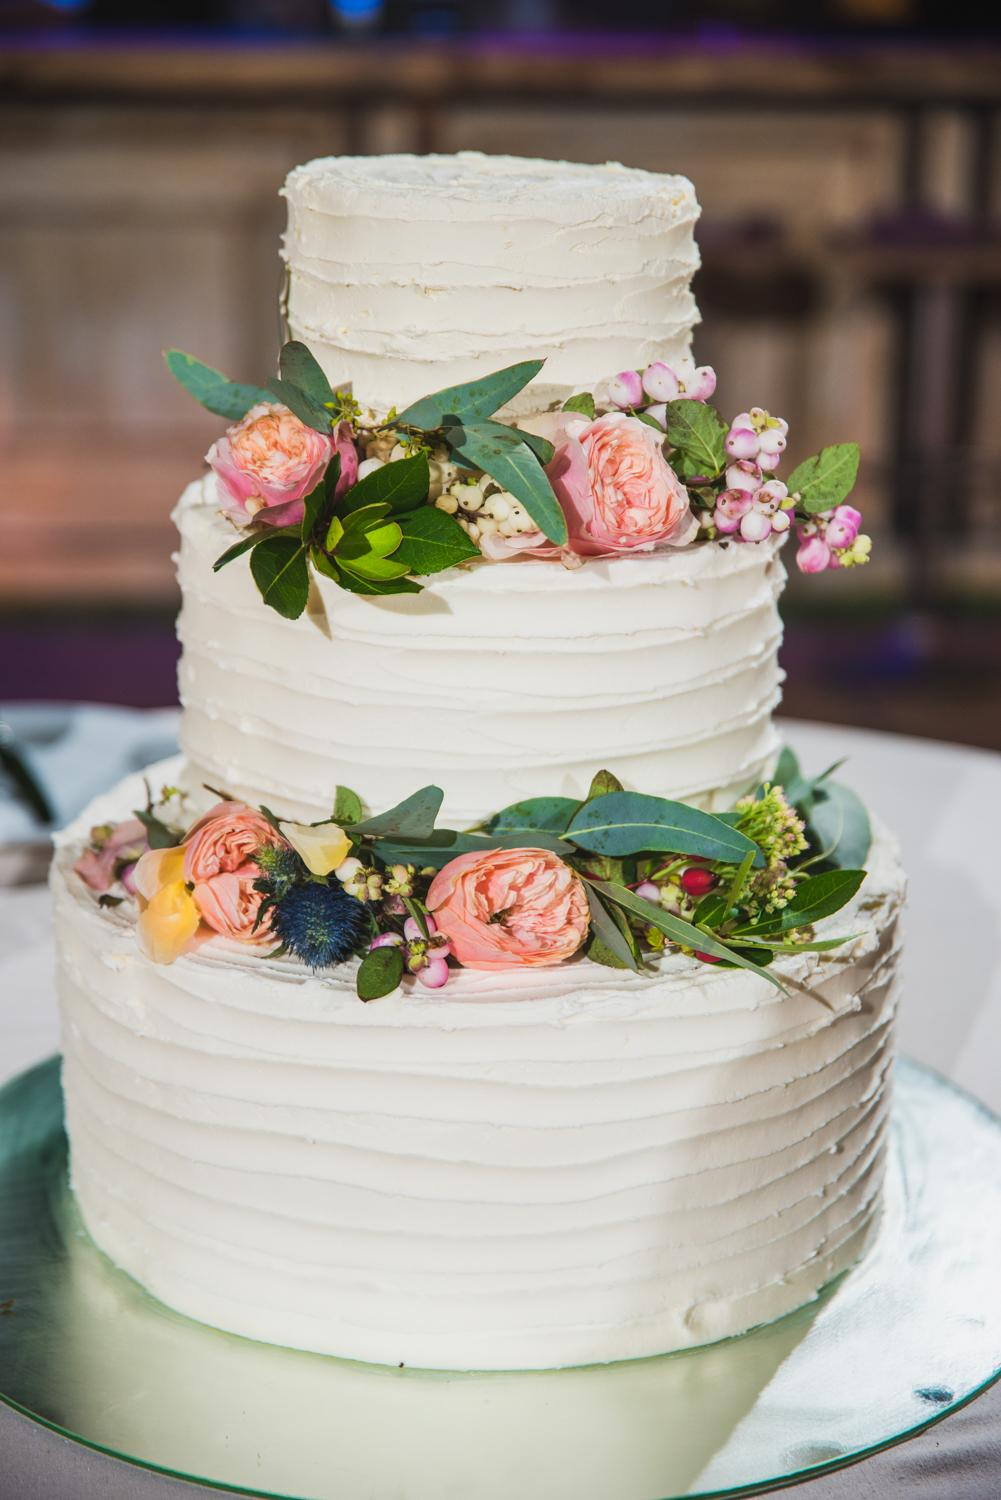 Marsala wedding cake in Greece's countryside